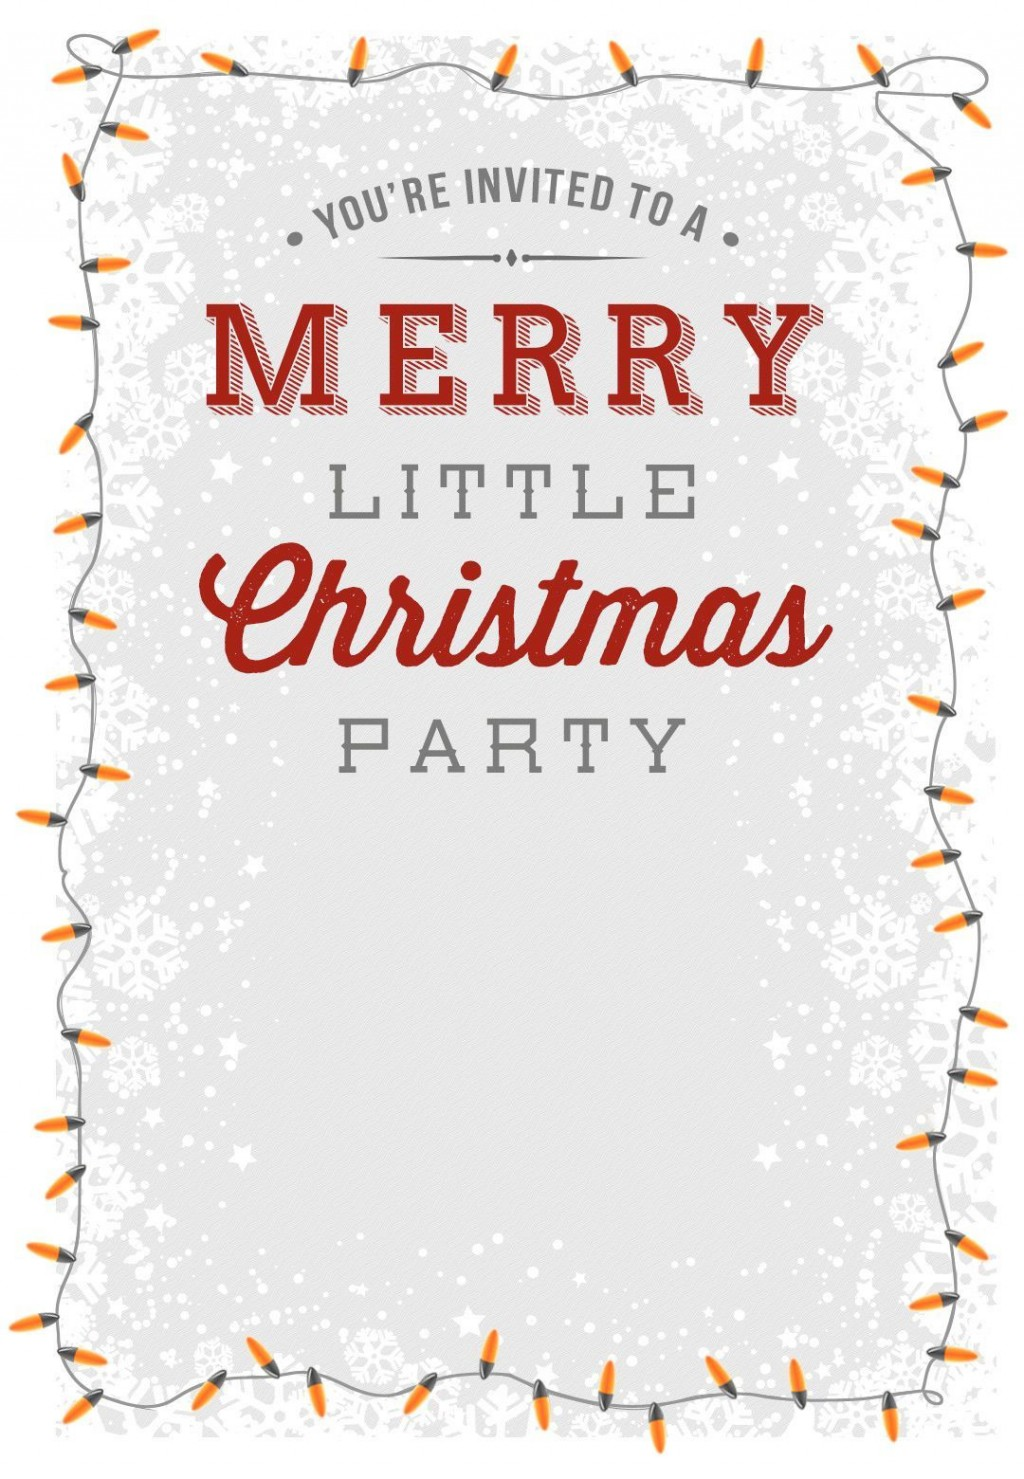 006 Awful Christma Party Invite Template Free Download Photo  Funny Invitation HolidayLarge